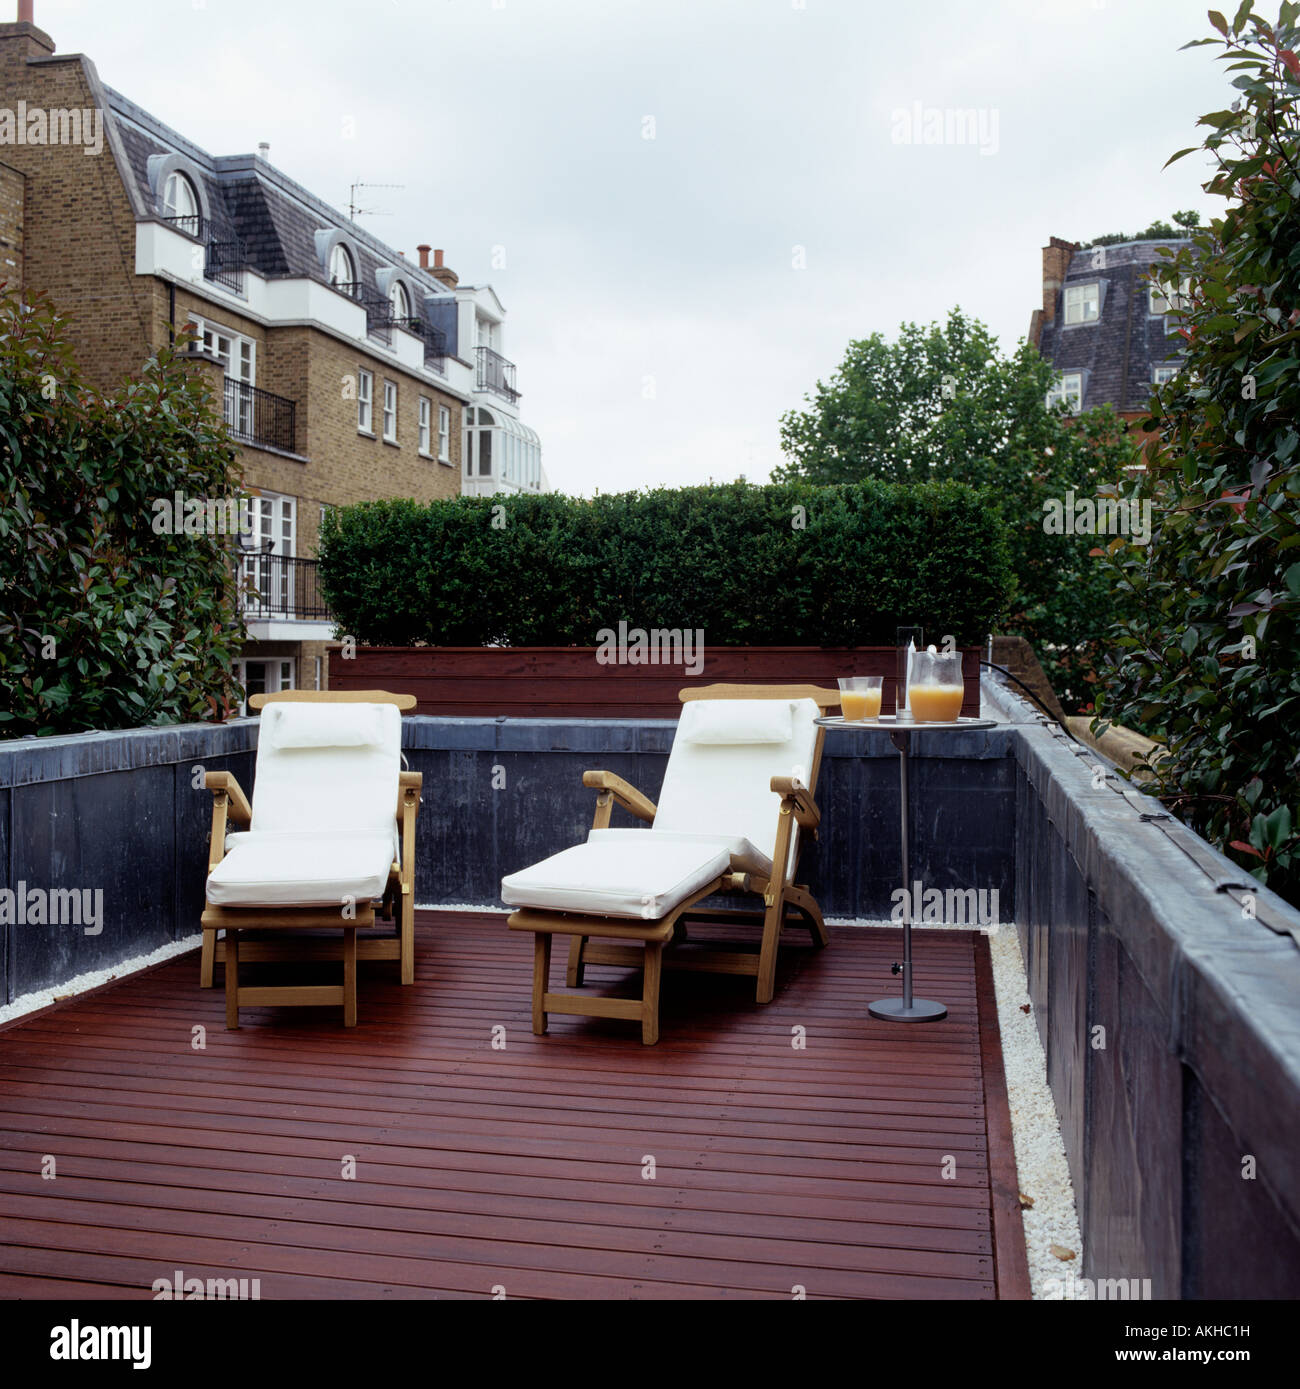 Roof Terrace With Wooden Decking And Sun Loungers